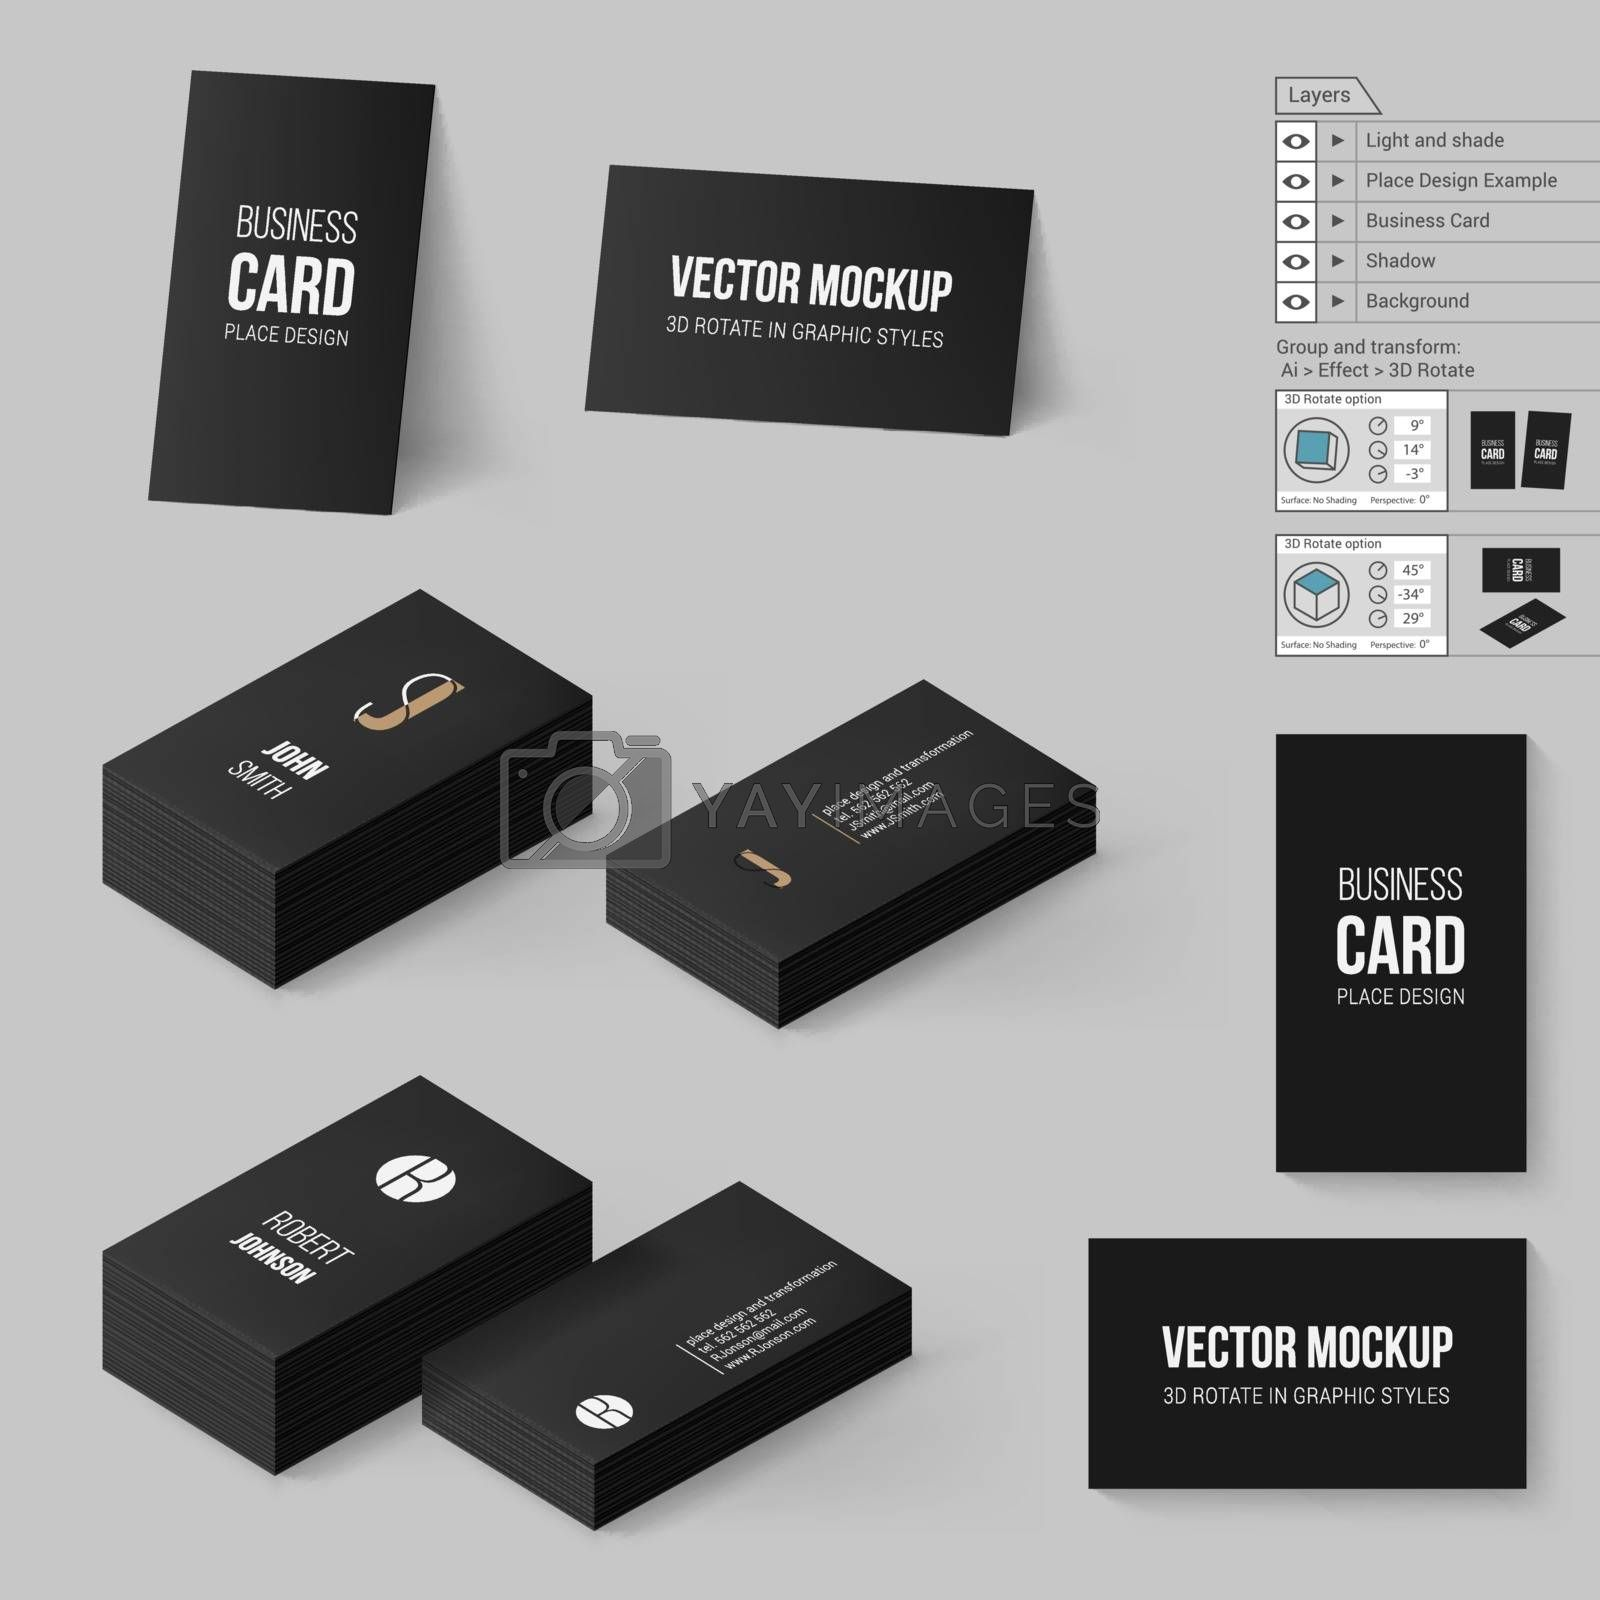 Black Business Cards Template. Corporate Identity. Branding Mock Up with 3D Rotate Options